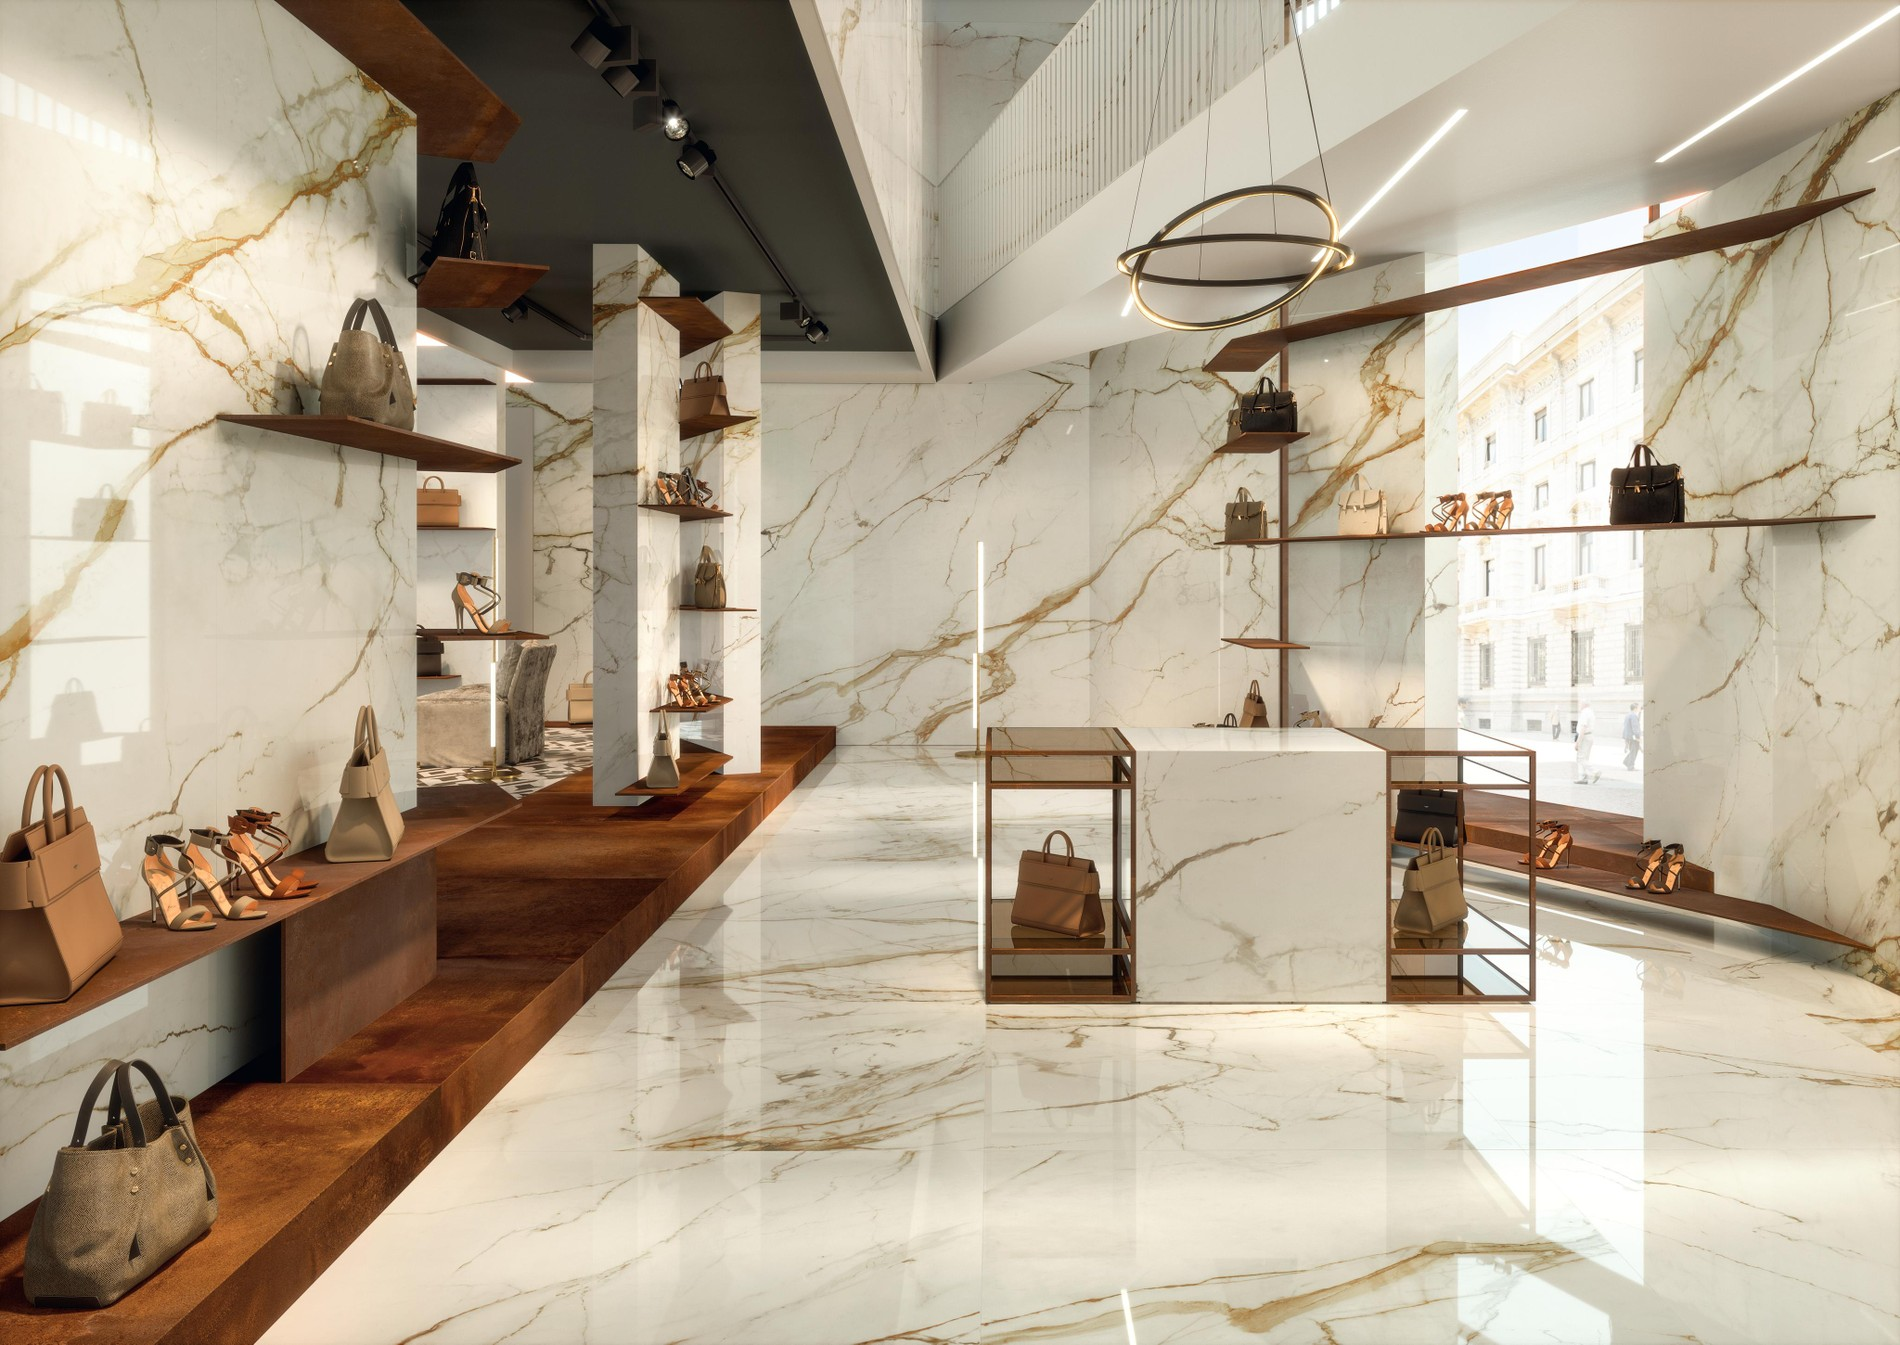 Marble-look porcelain floor and wall tiles